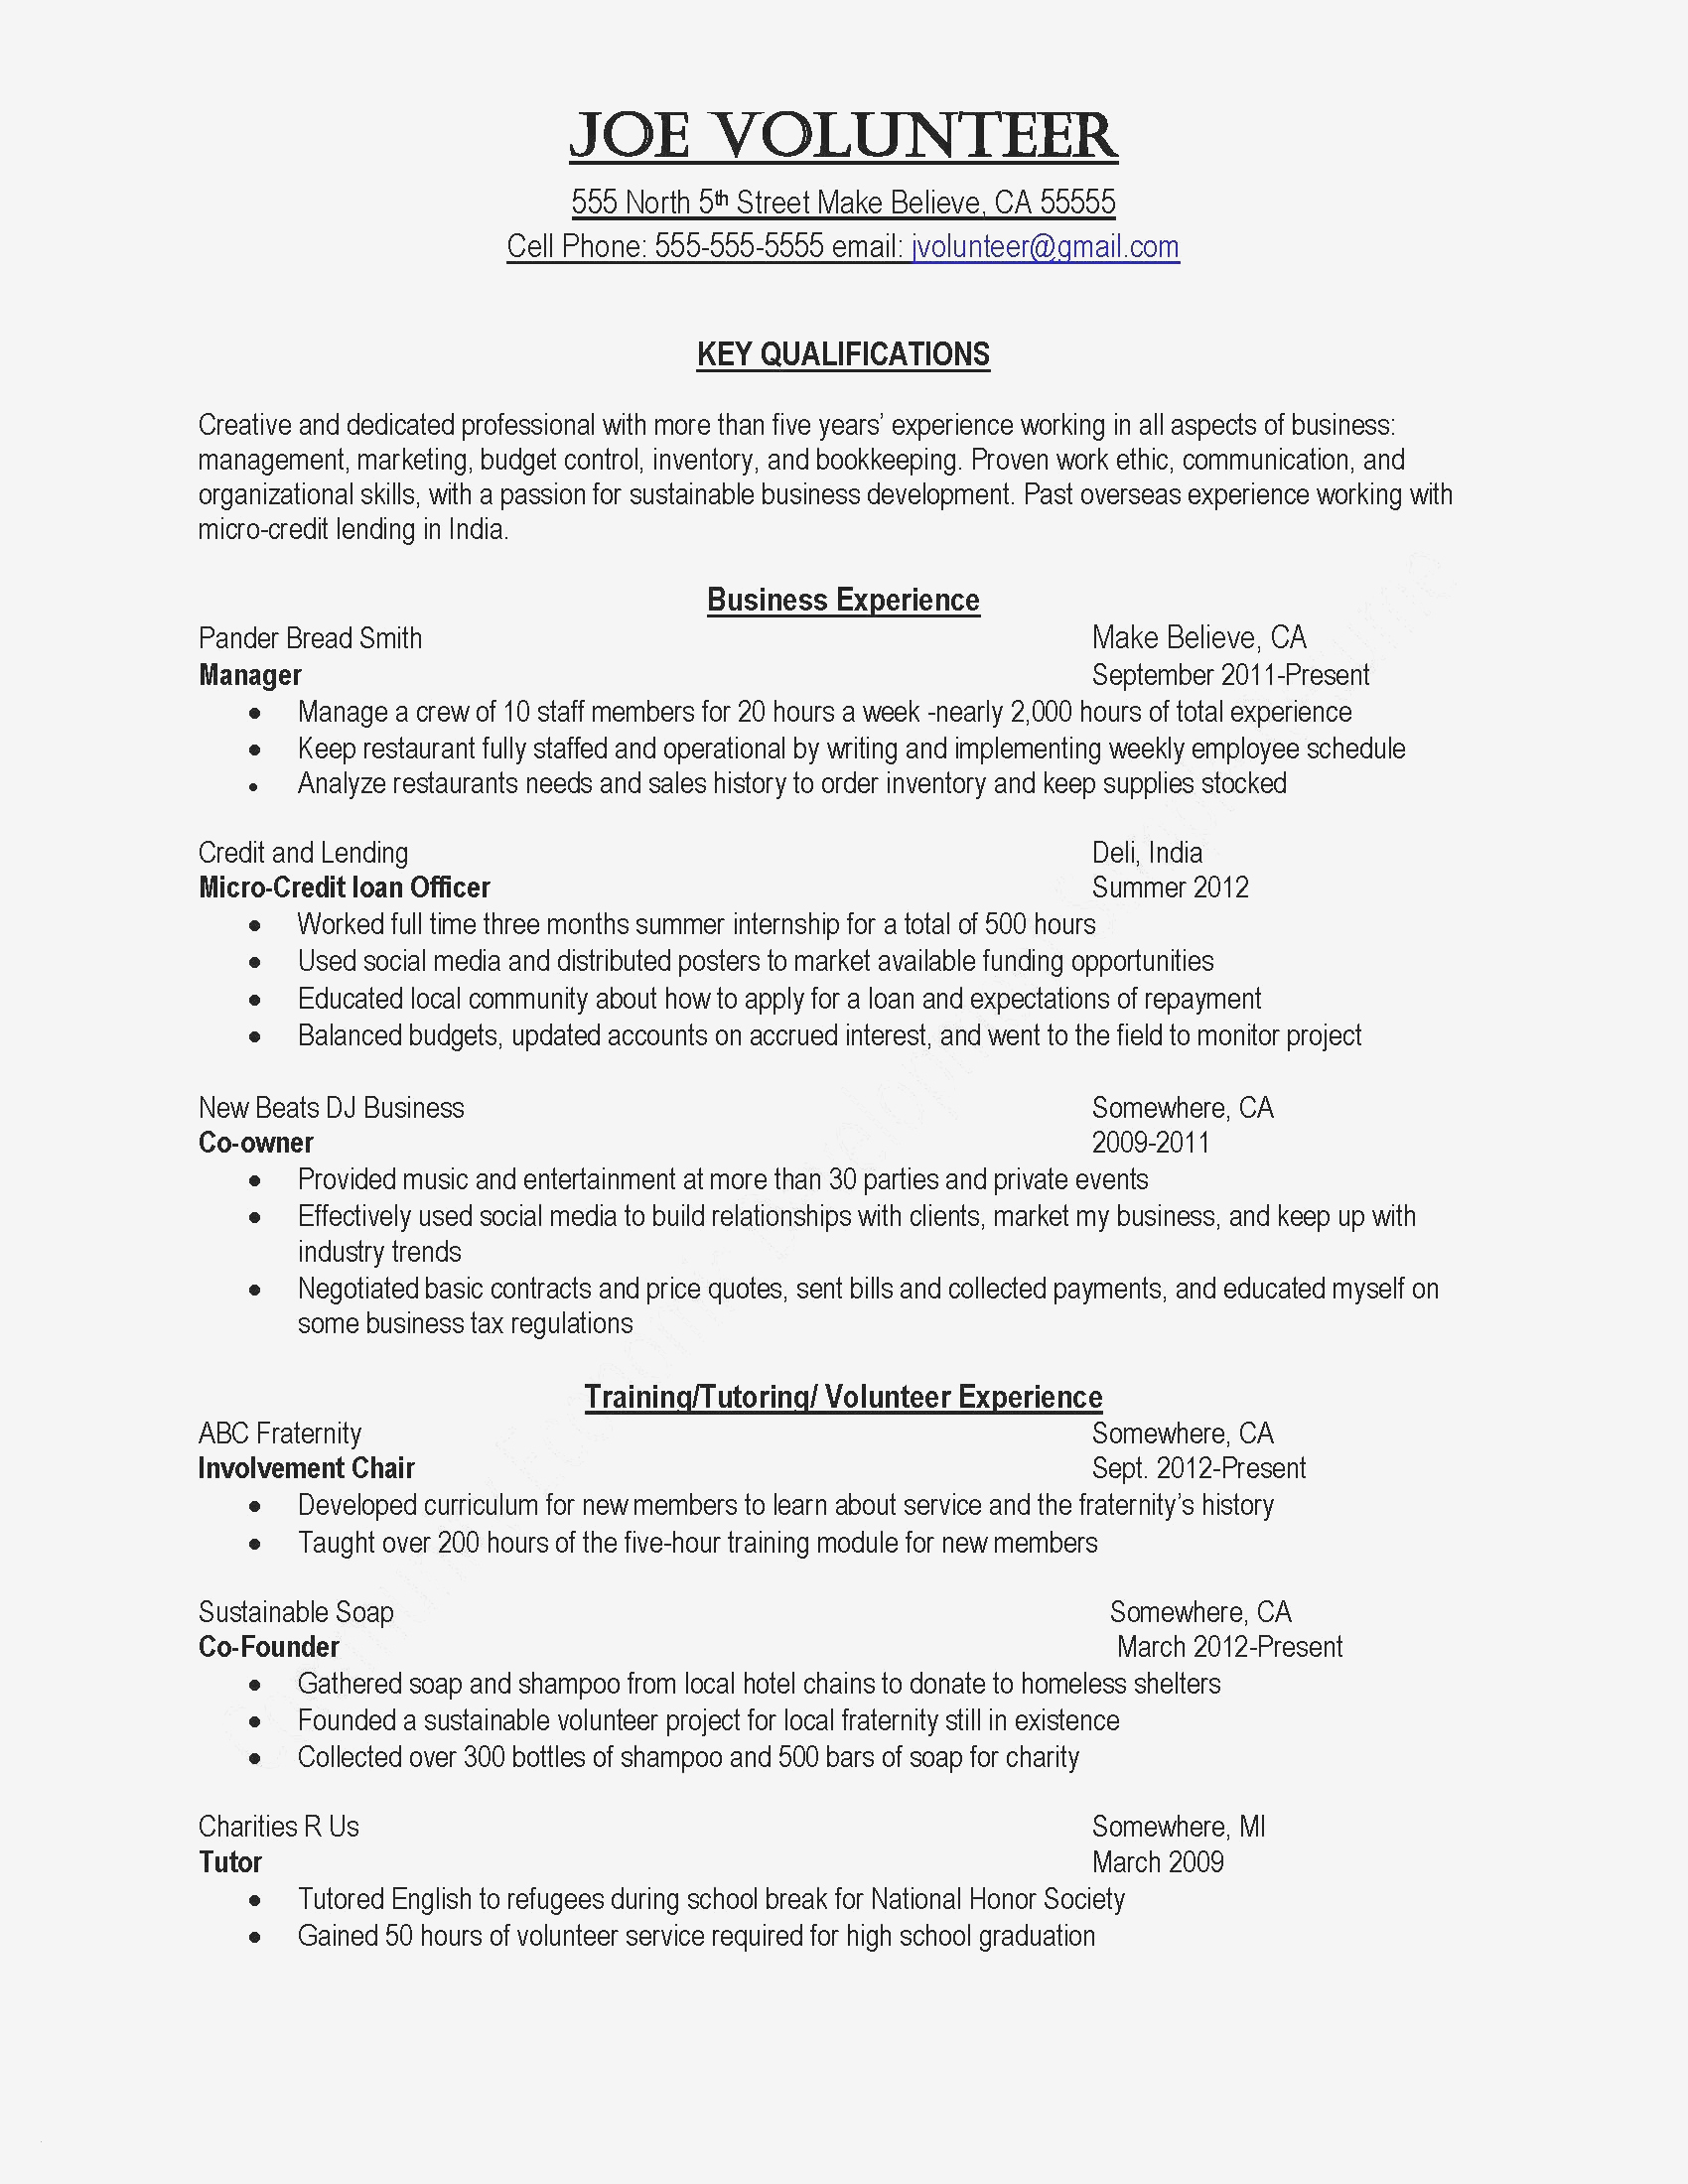 Mergers and Acquisitions Resume Template - Resume Sample Server